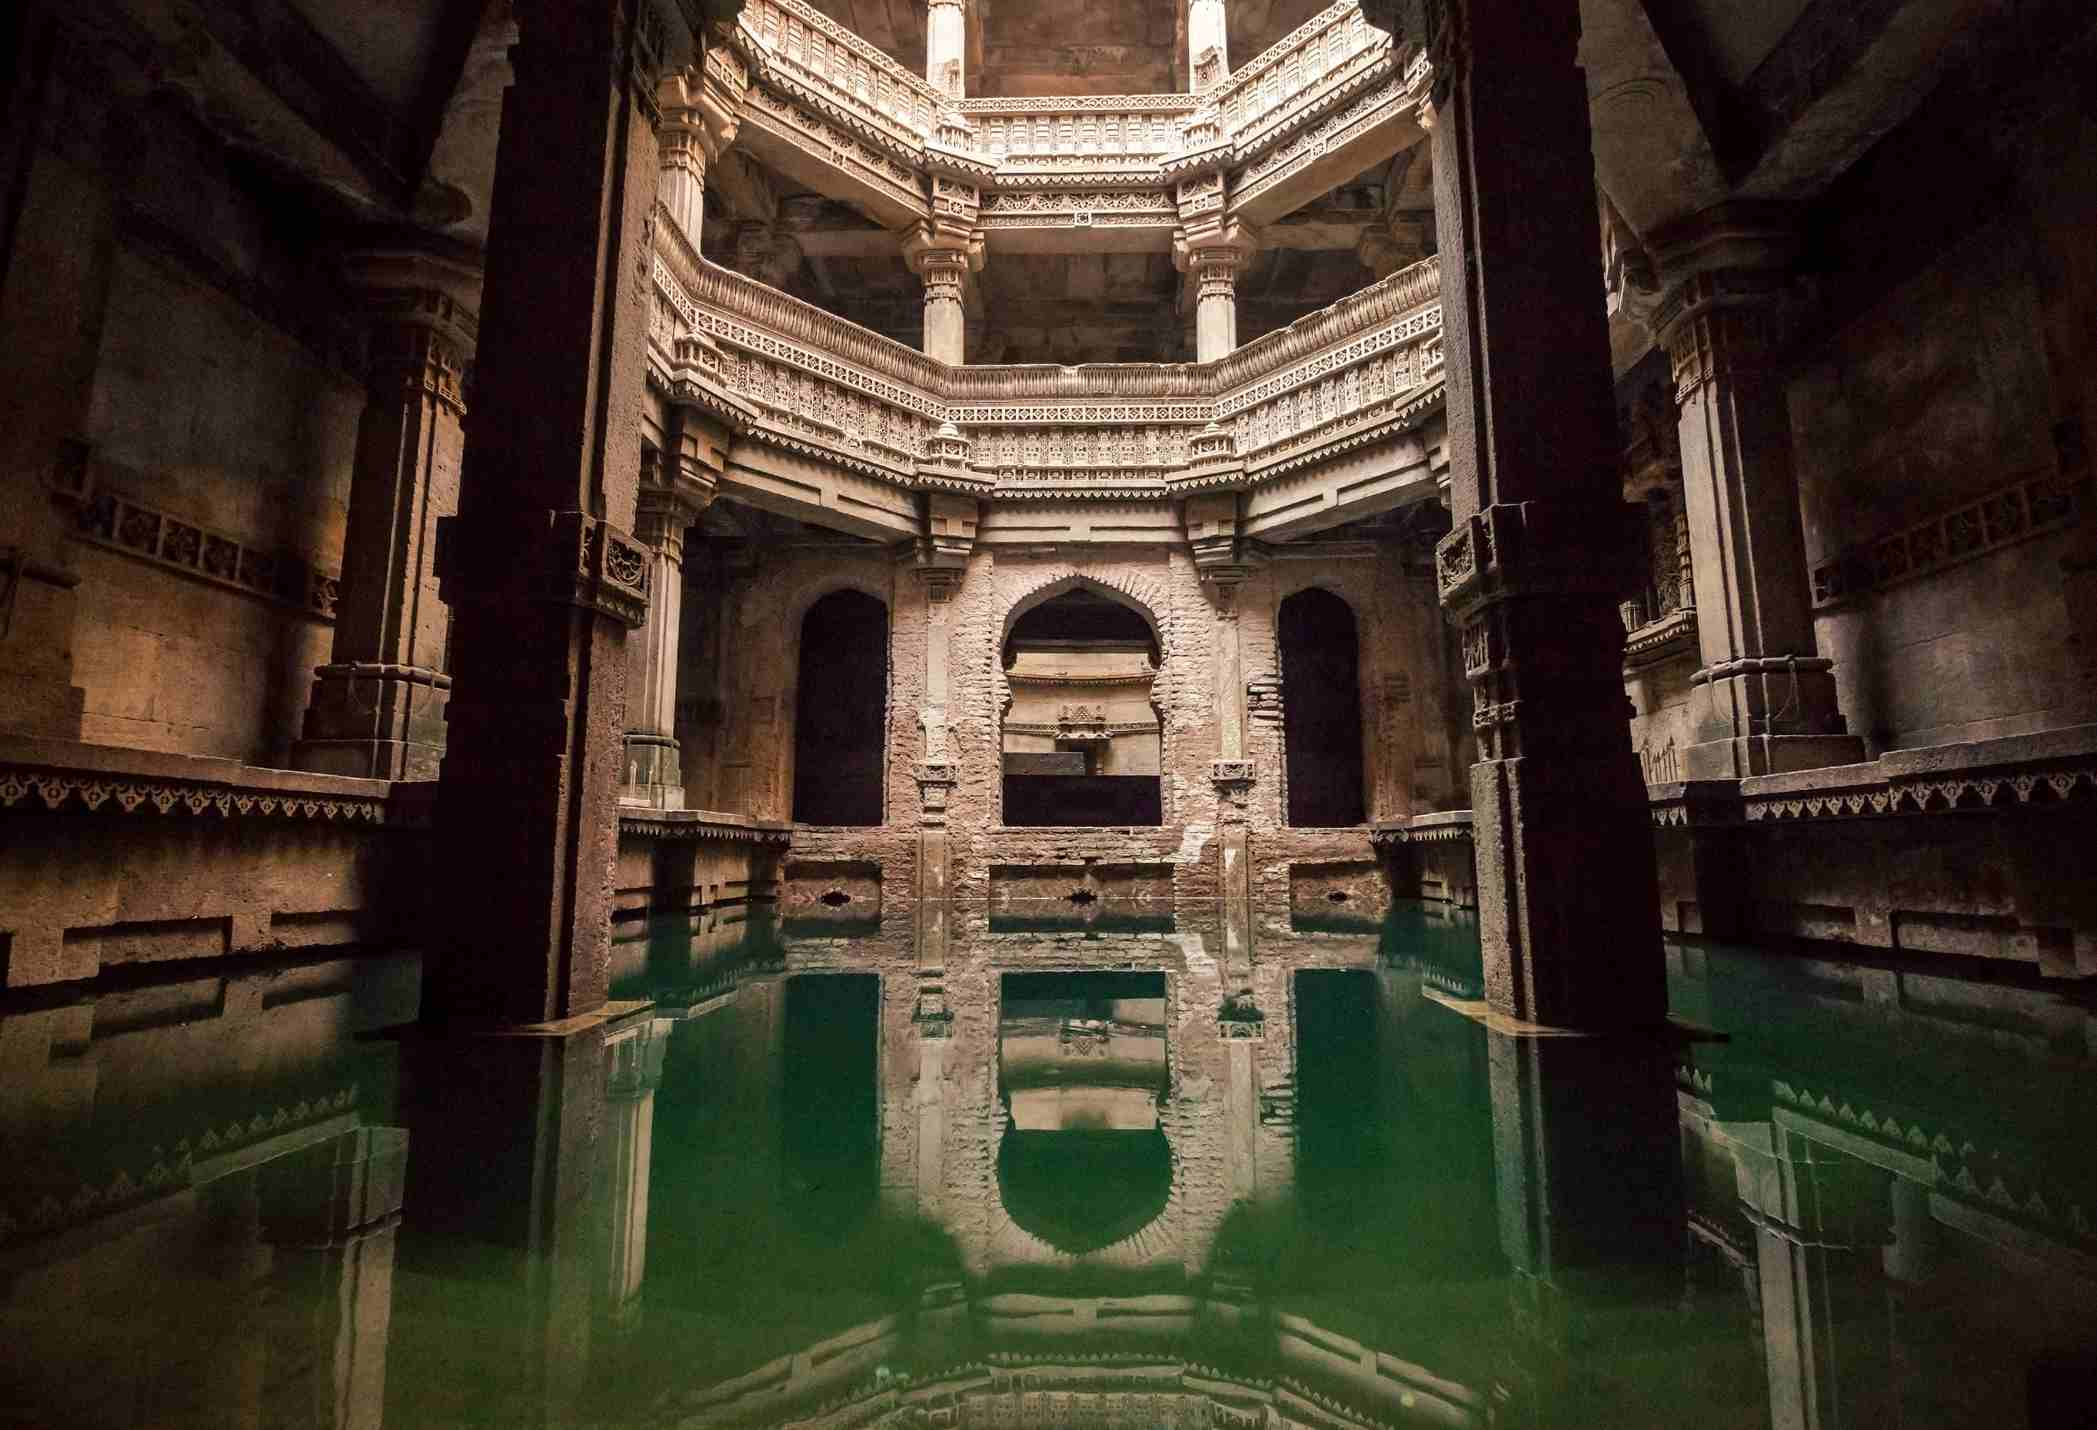 Architectural features of Adalaj Stepwell, Solanki architectural style, located in Ahmedabad.